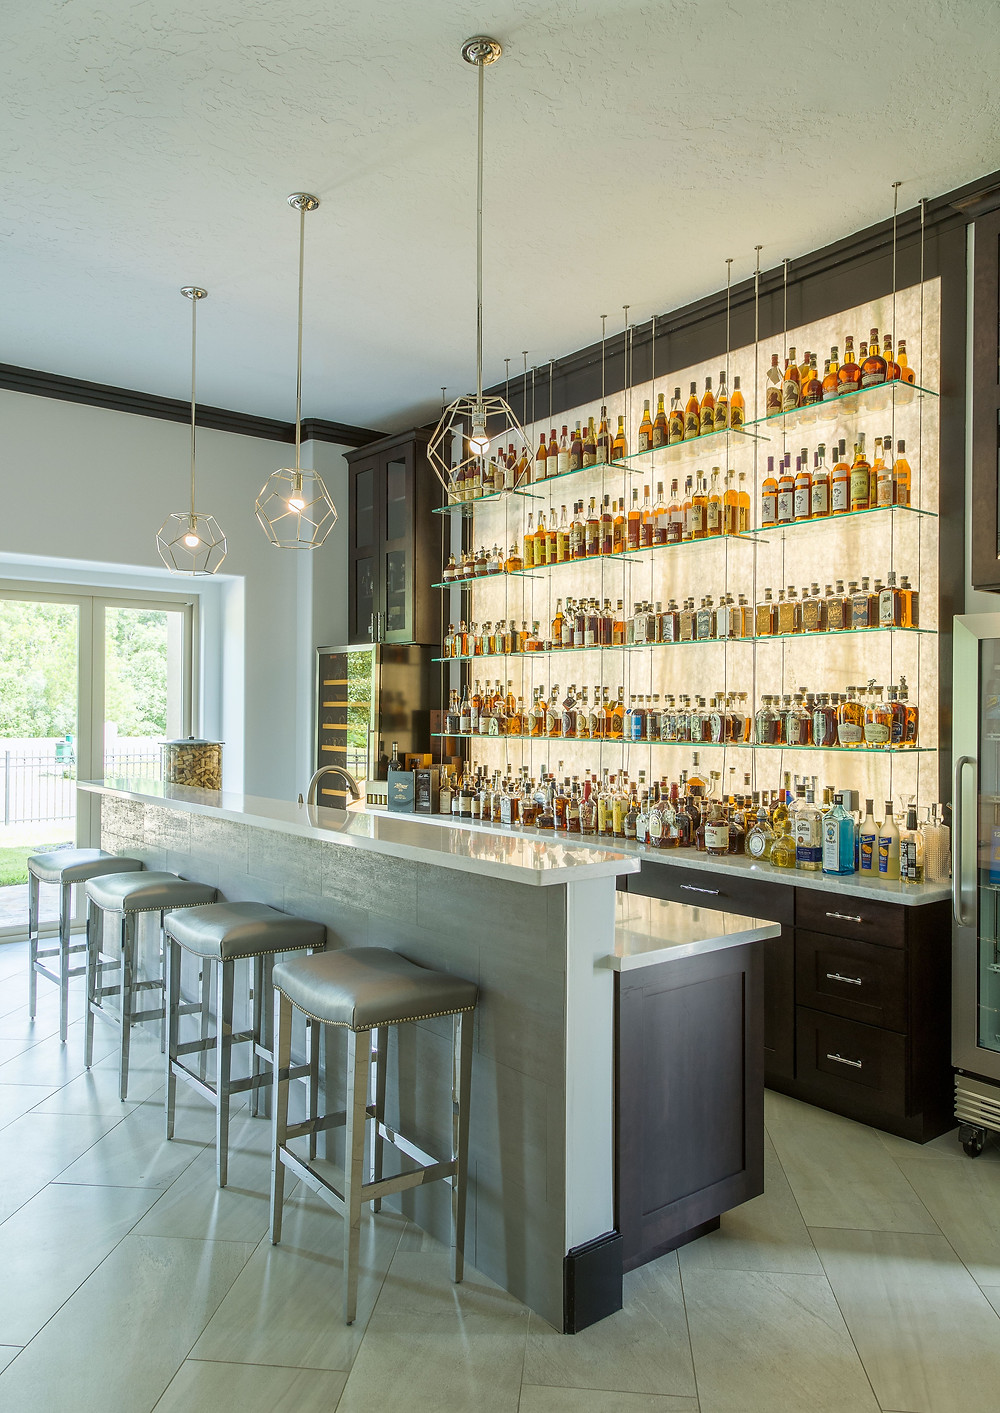 By Design Interiors - Interior Designers in Houston - Home Bar